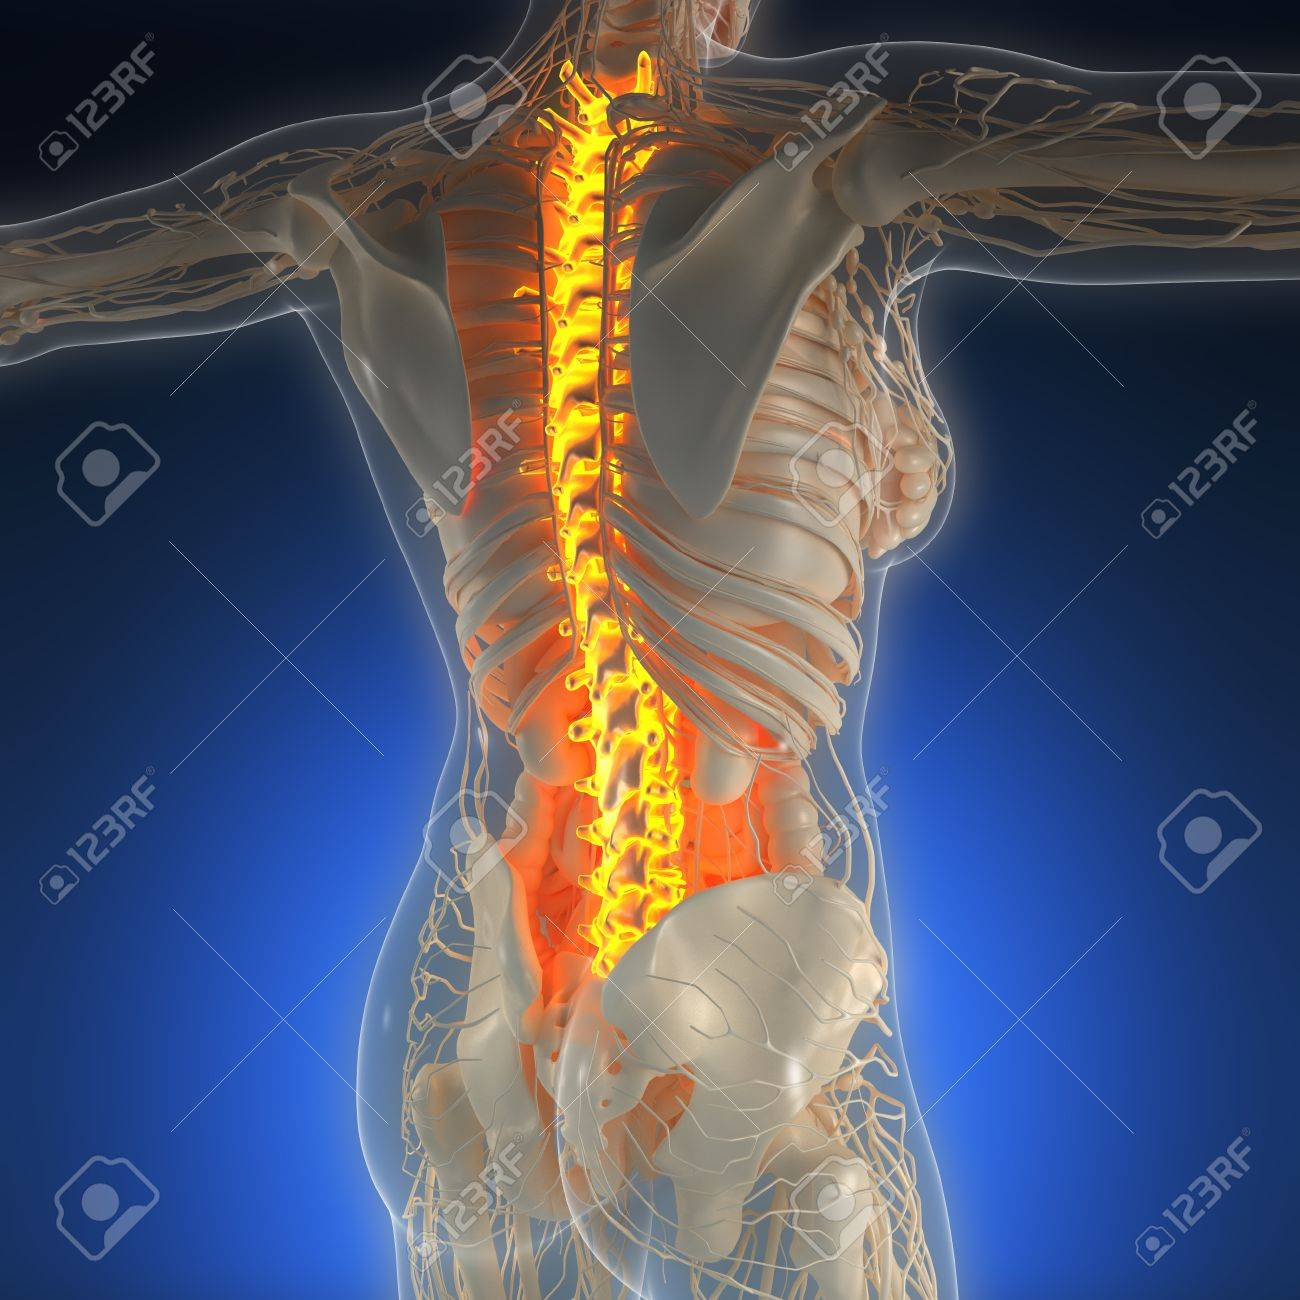 Science Anatomy Of Human Body In X Ray With Glow Back Bones Stock